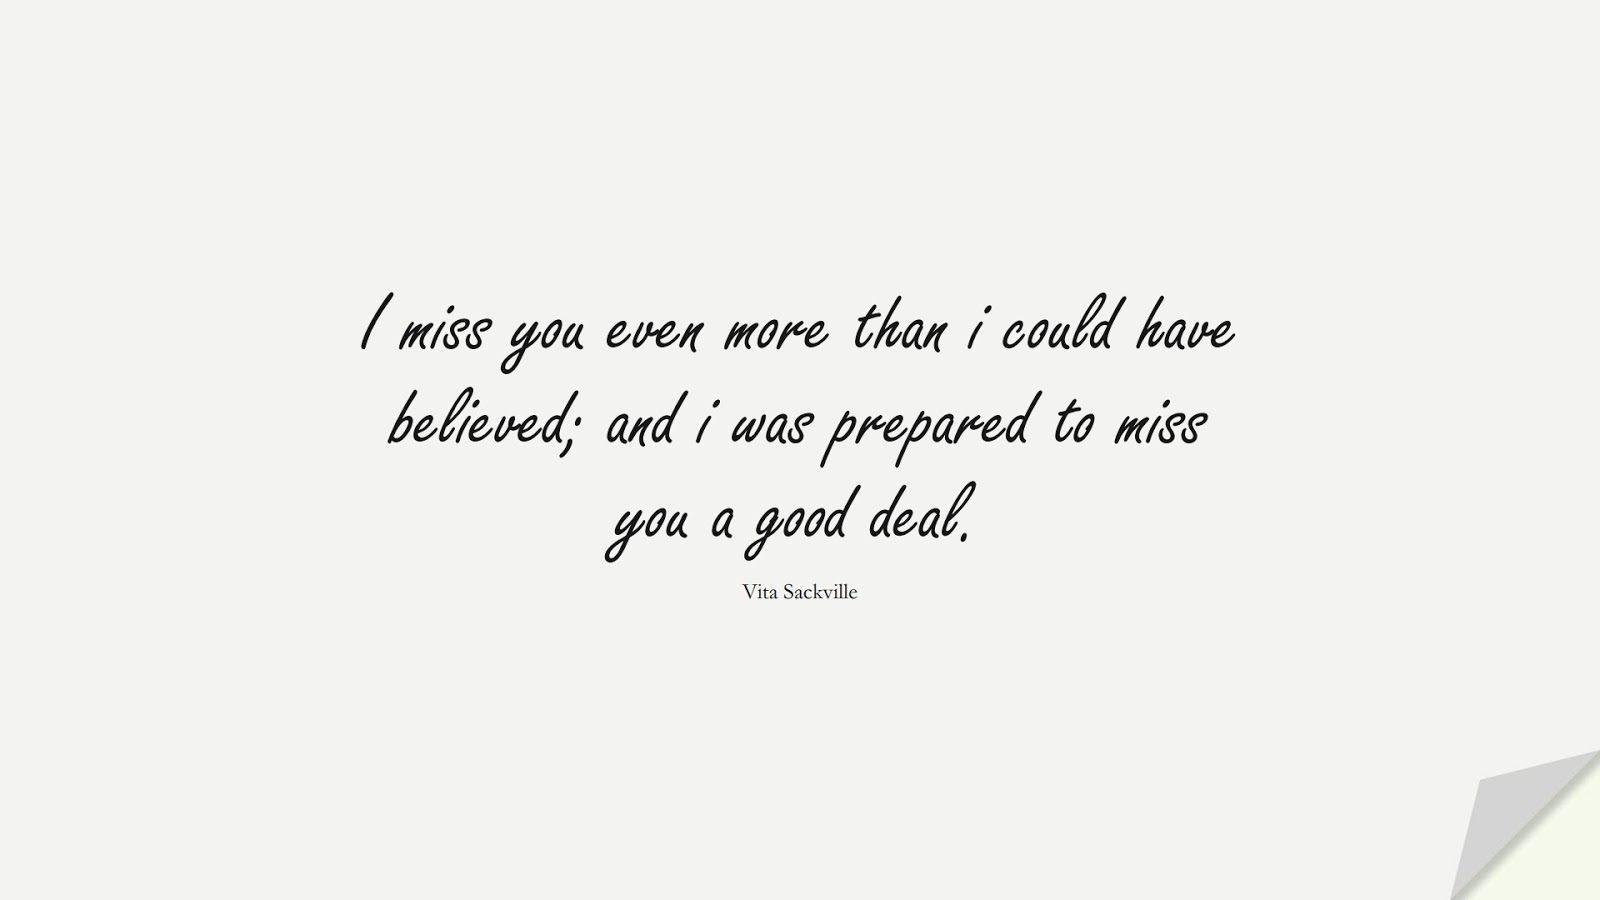 I miss you even more than i could have believed; and i was prepared to miss you a good deal. (Vita Sackville);  #LoveQuotes